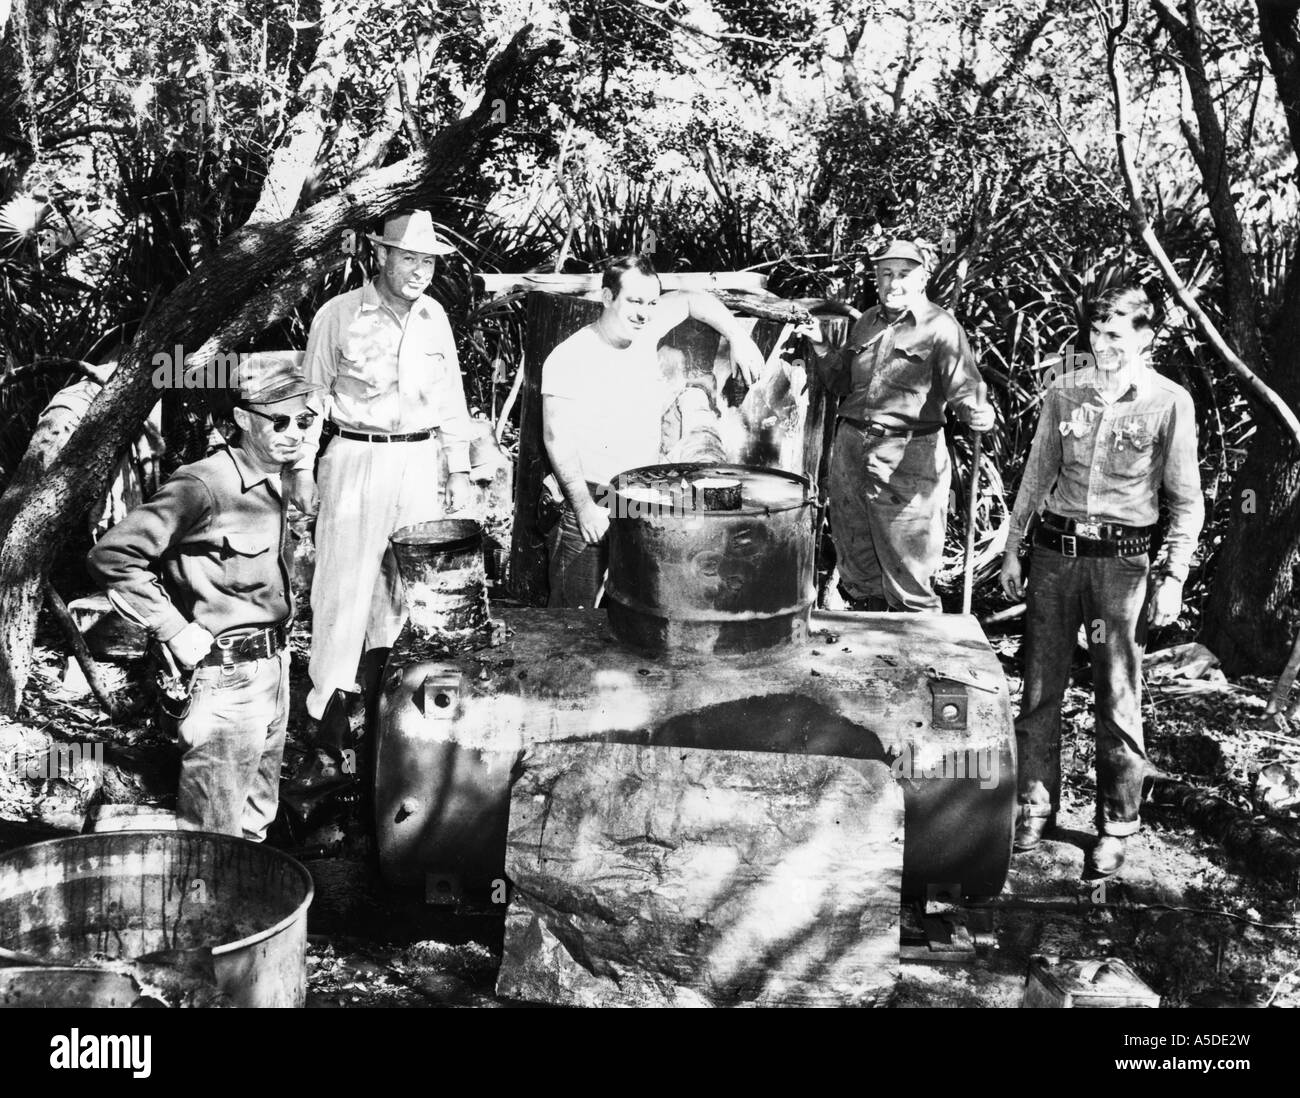 Historic photograph of Florida sheriff with seized moonshine still - Stock Image